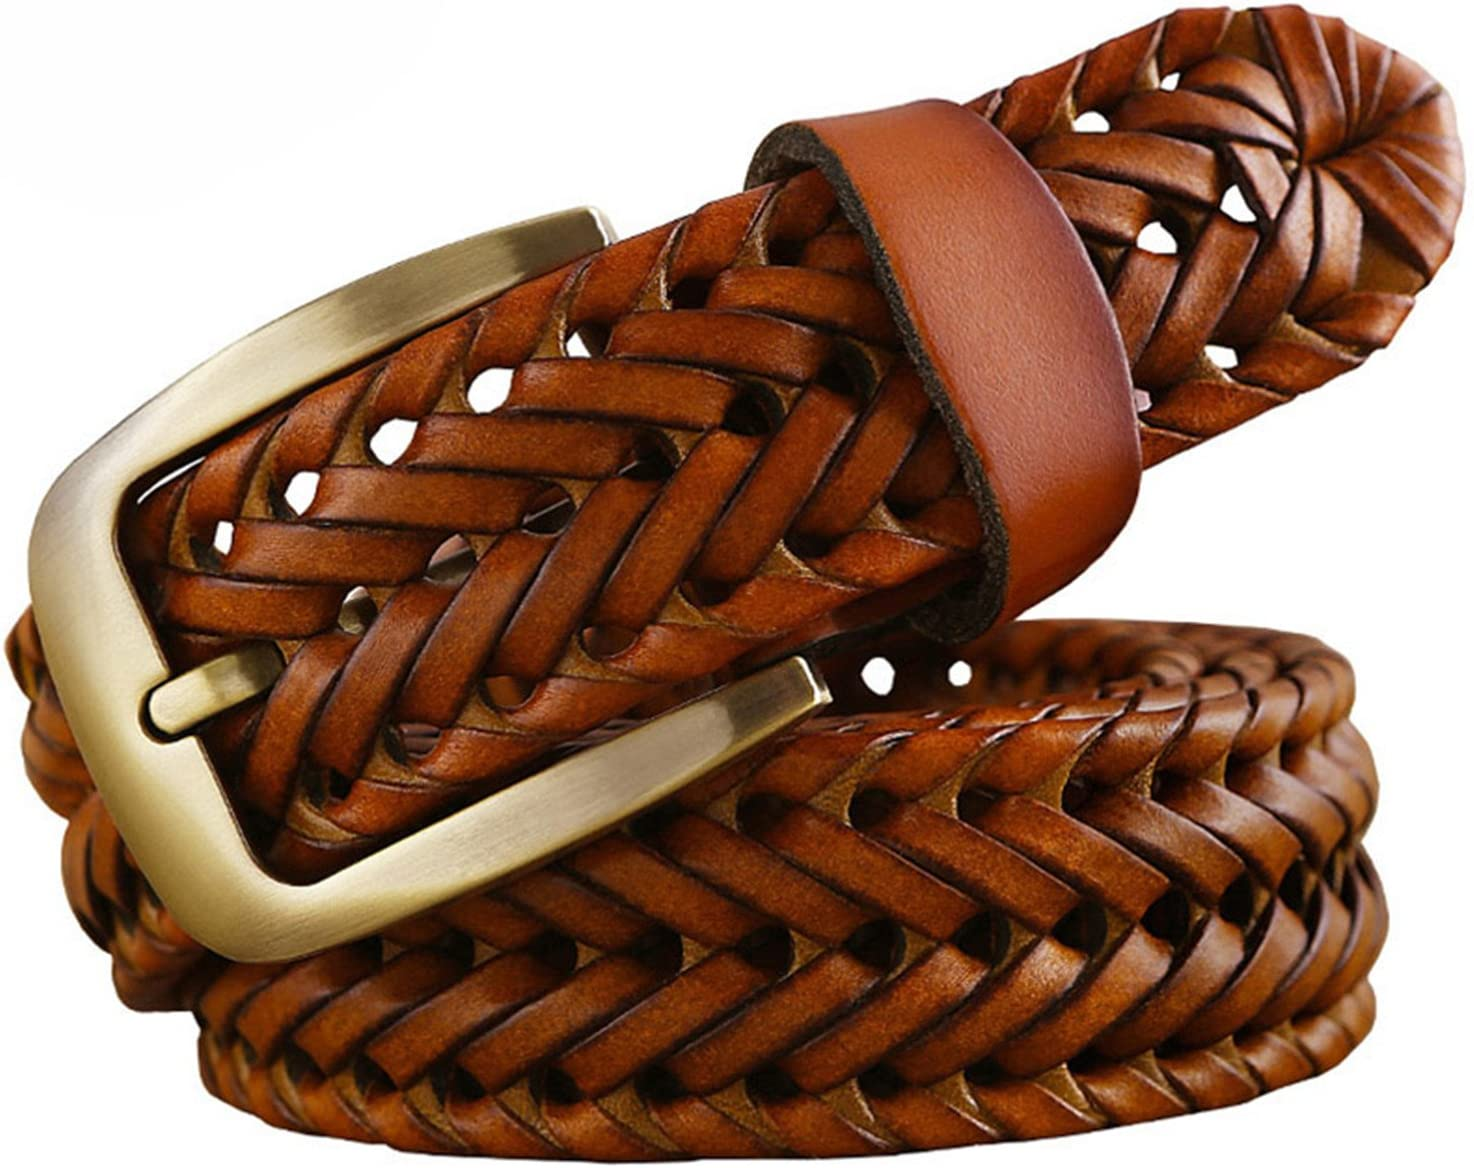 Susan1999 New Braided Belt Fashion Mens Genuine Leather Second Layer Skin Belts For Jeans